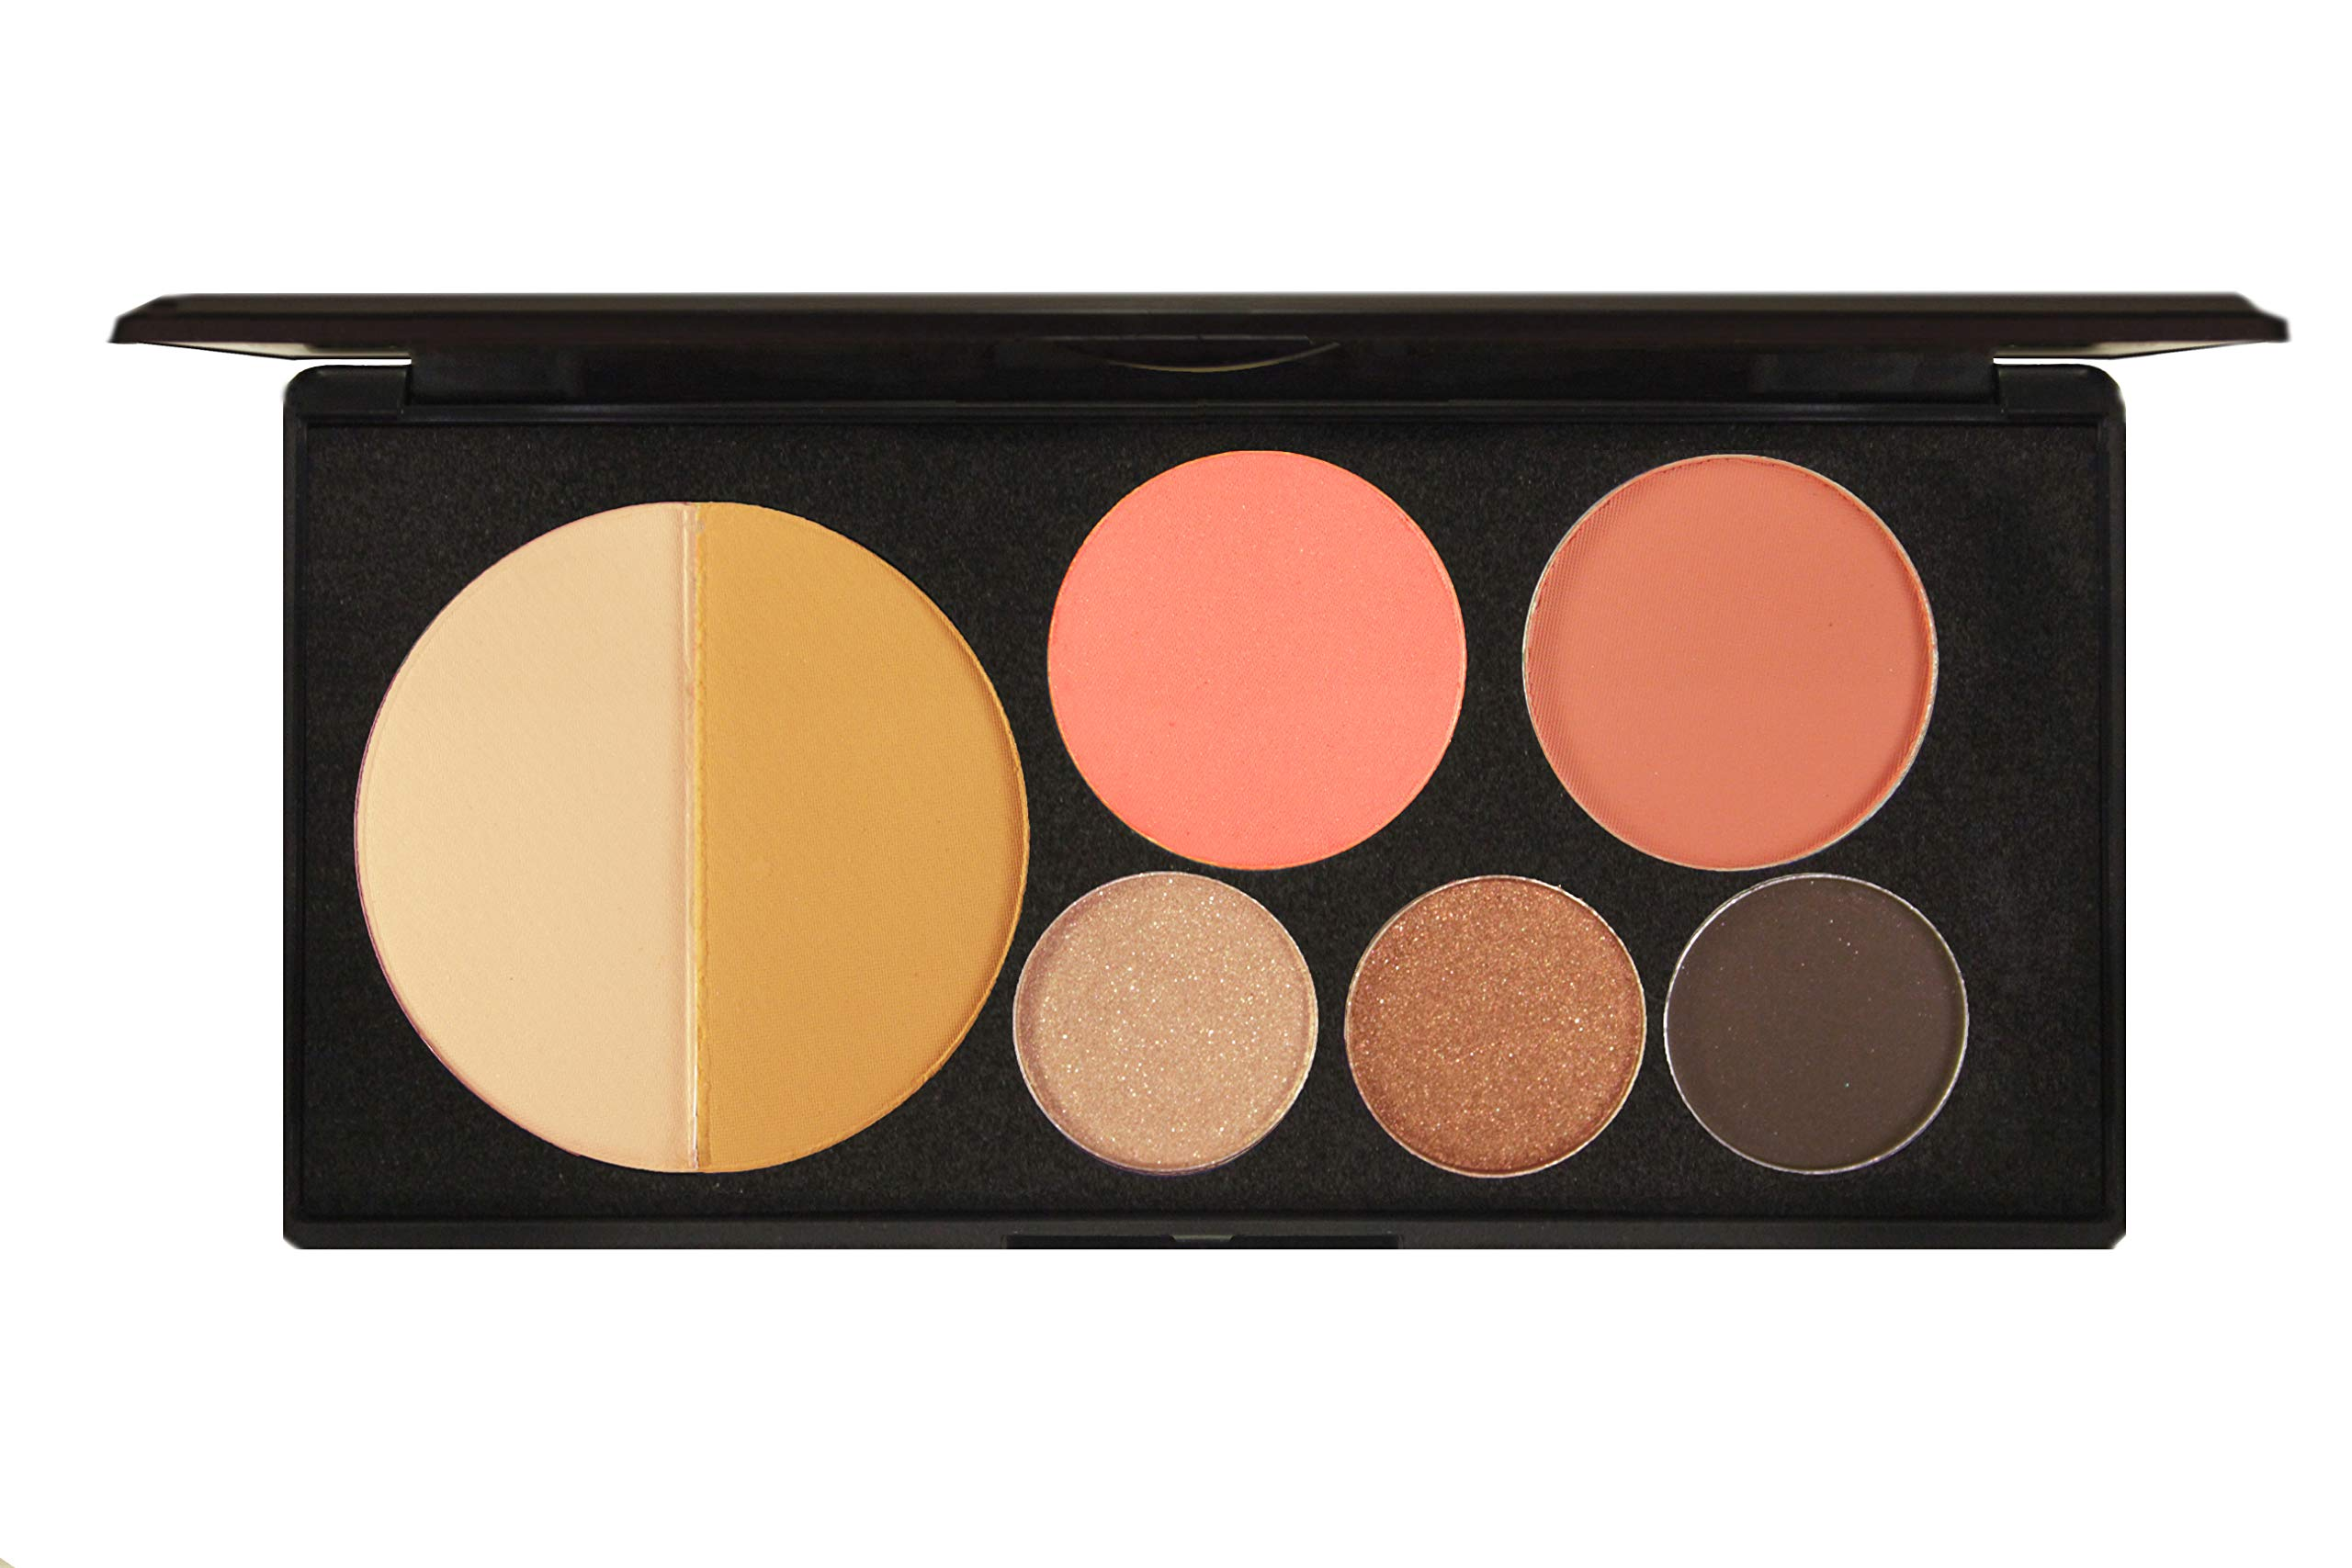 EVE PEARL Ultimate Face Palette Powder Eyeshadow Blush Long Lasting Natural Double Pigmented Glamour Makeup Set (Bombshell)